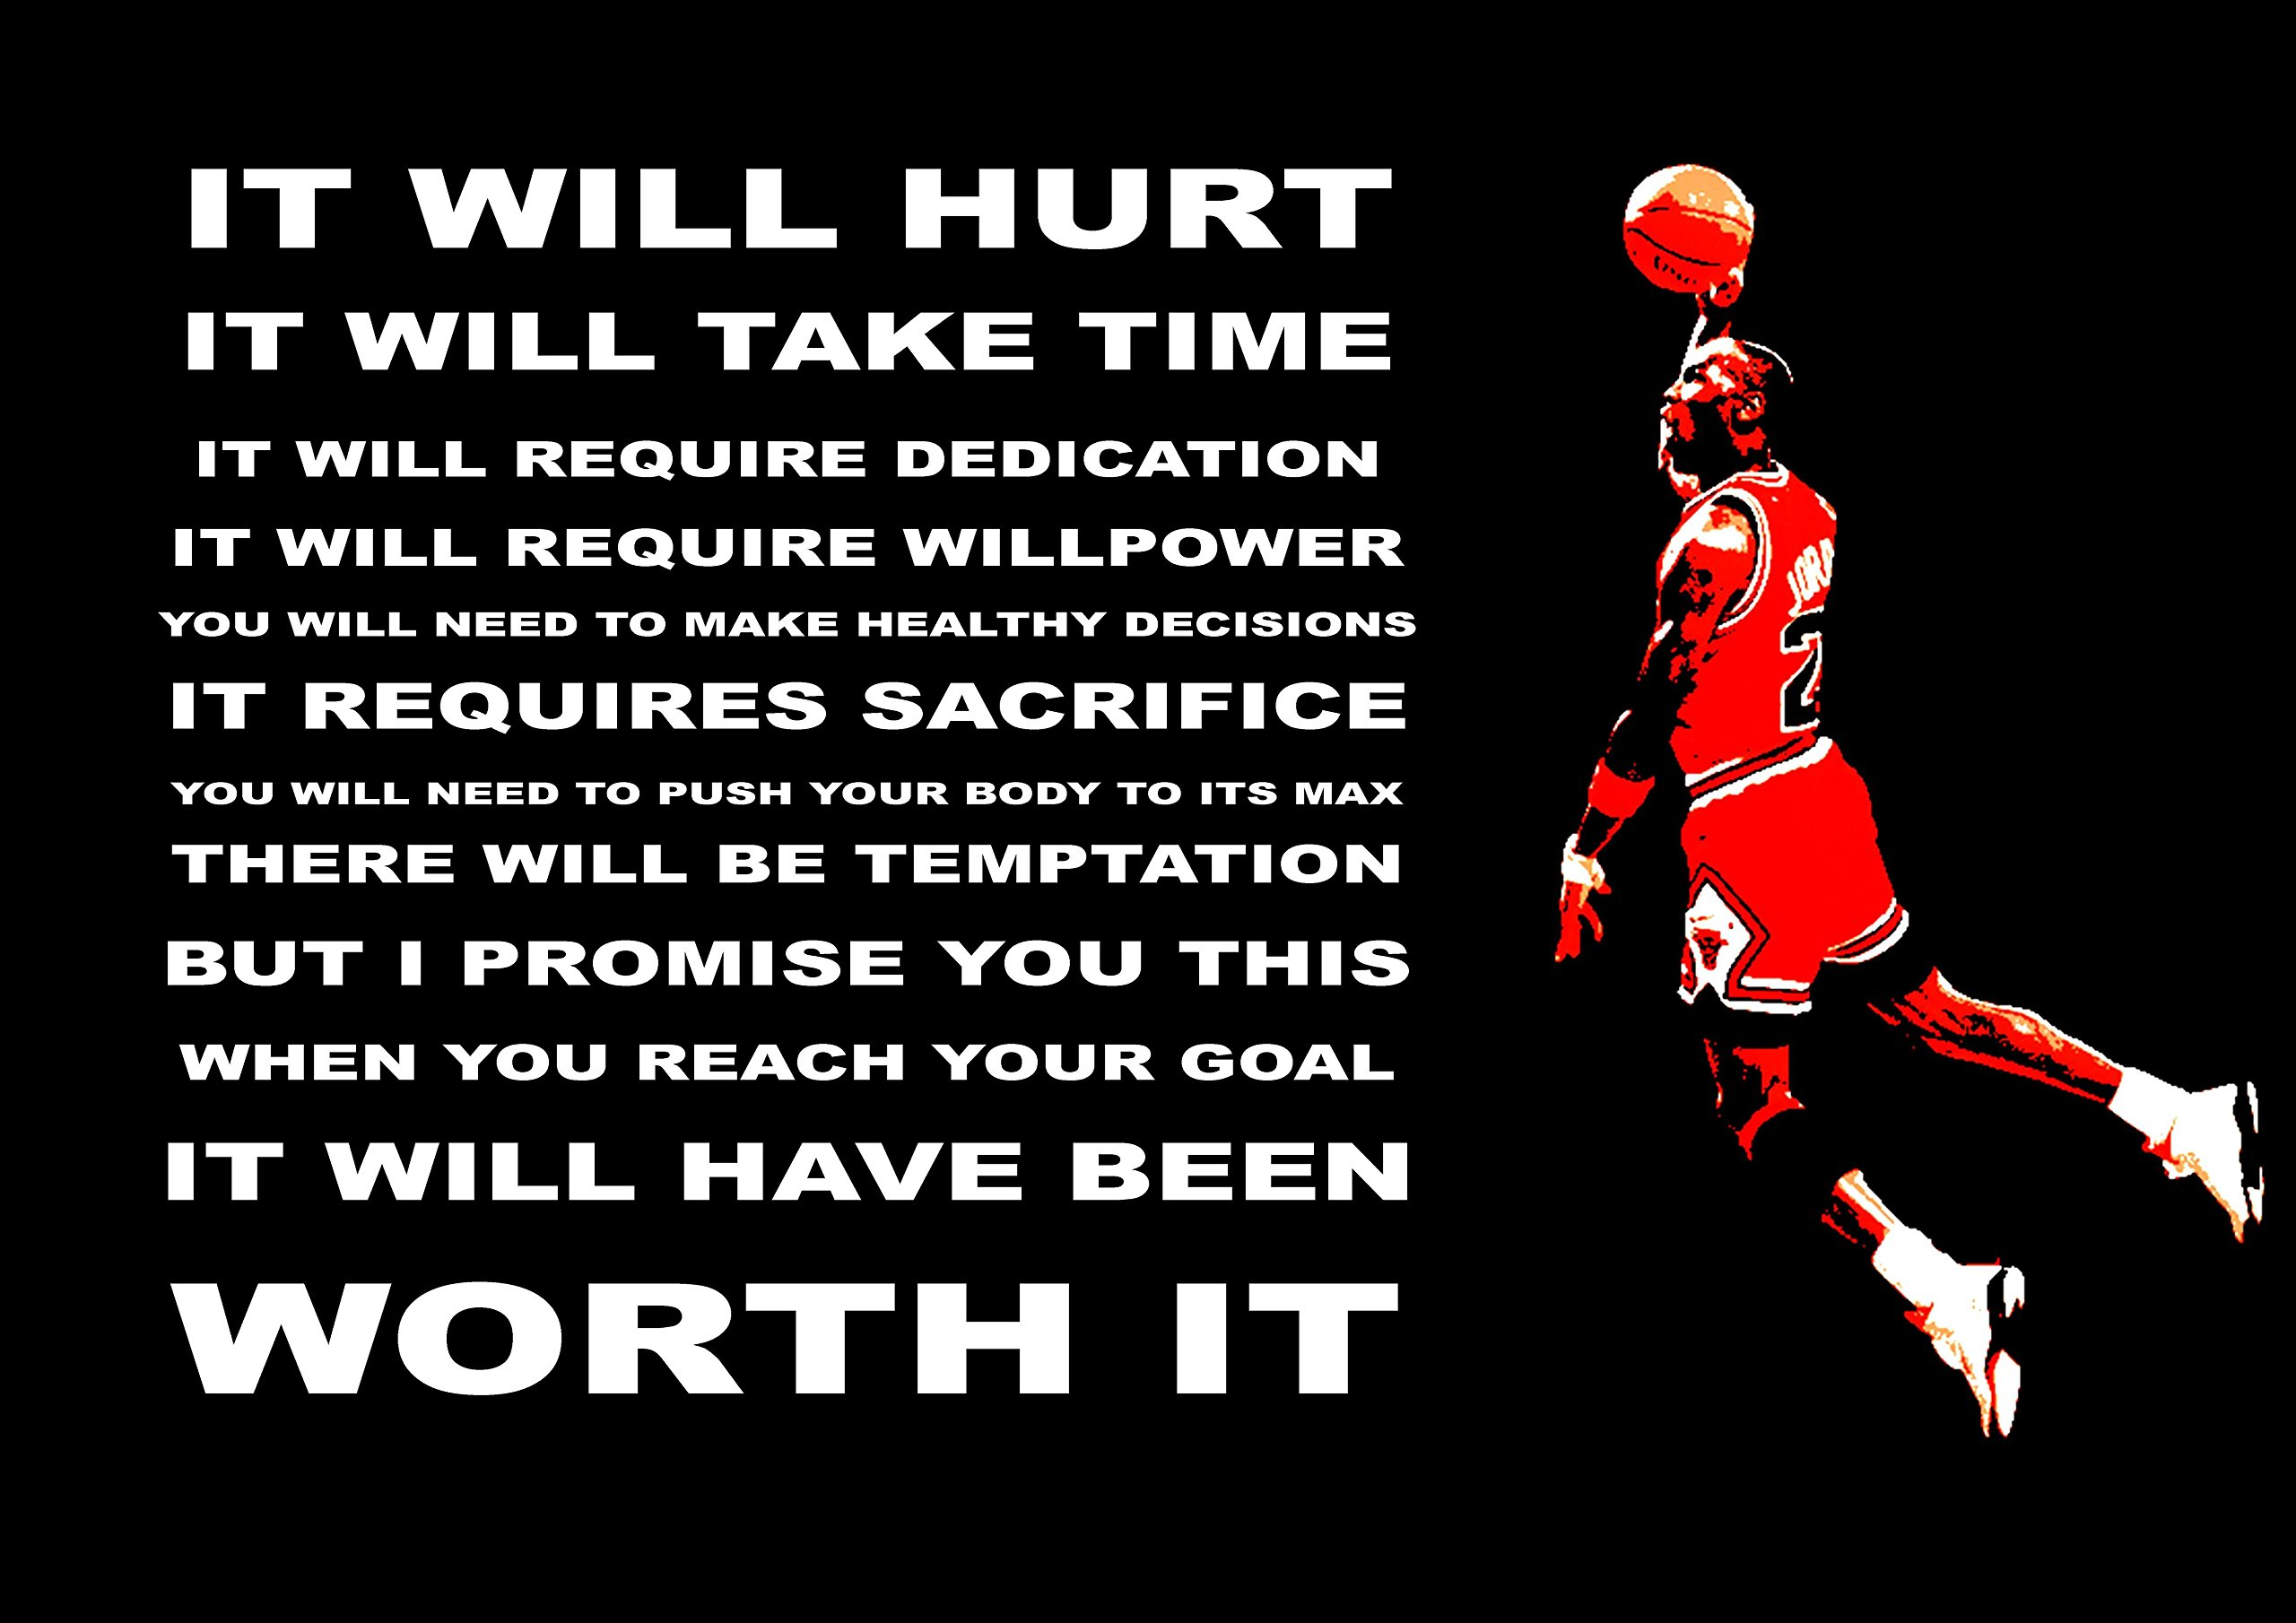 MOTIVATIONAL SPORTS QUOTE POSTER PRINT IT WILL HURT WORTH IT INSPIRATIONAL